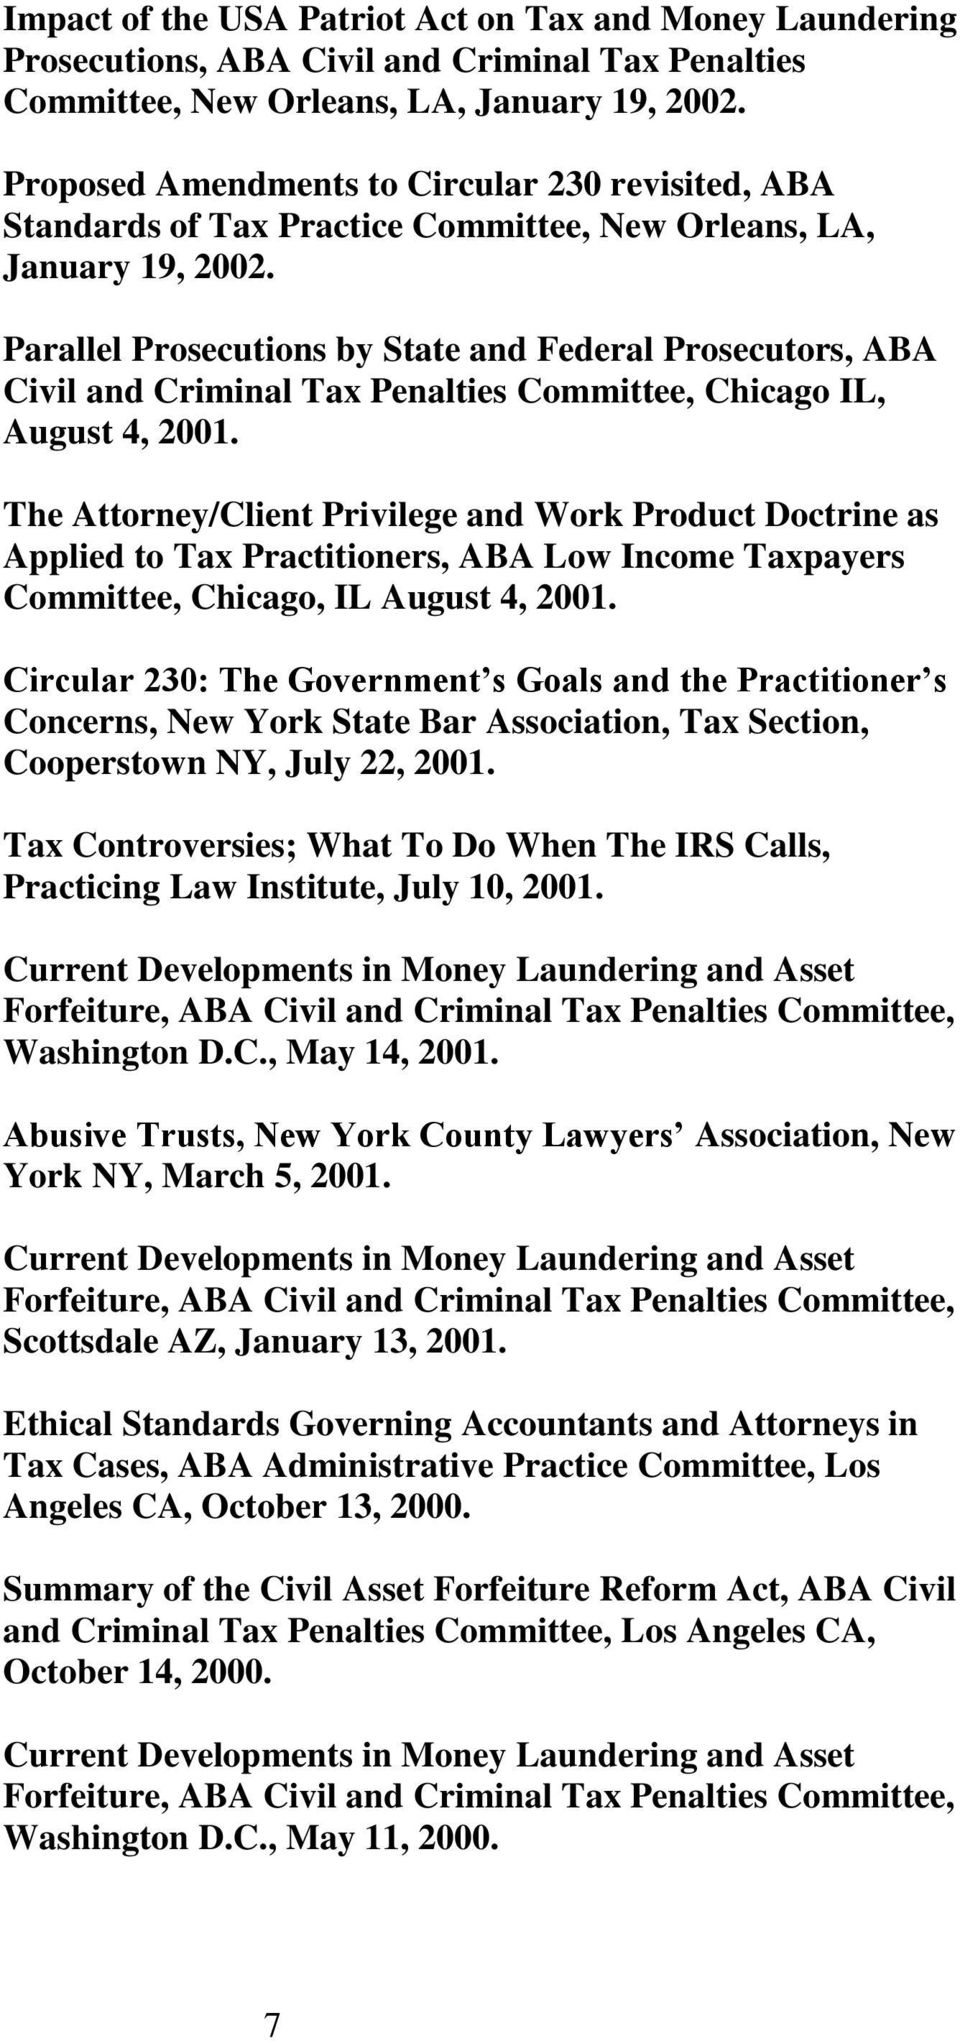 Parallel Prosecutions by State and Federal Prosecutors, ABA Civil and Criminal Tax Penalties Committee, Chicago IL, August 4, 2001.